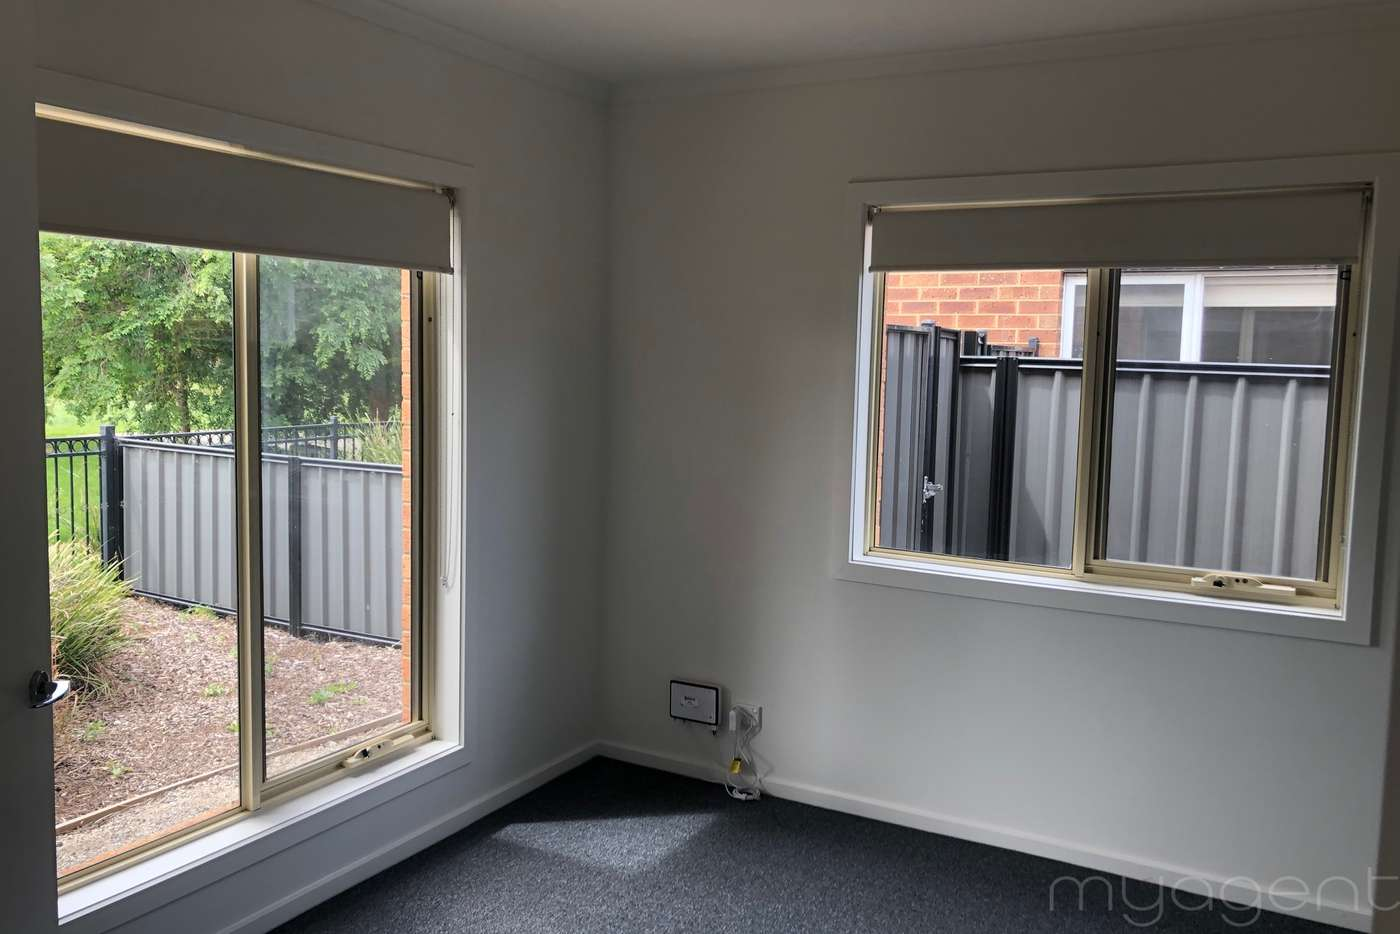 Sixth view of Homely house listing, 13 Prichard Walk, Point Cook VIC 3030